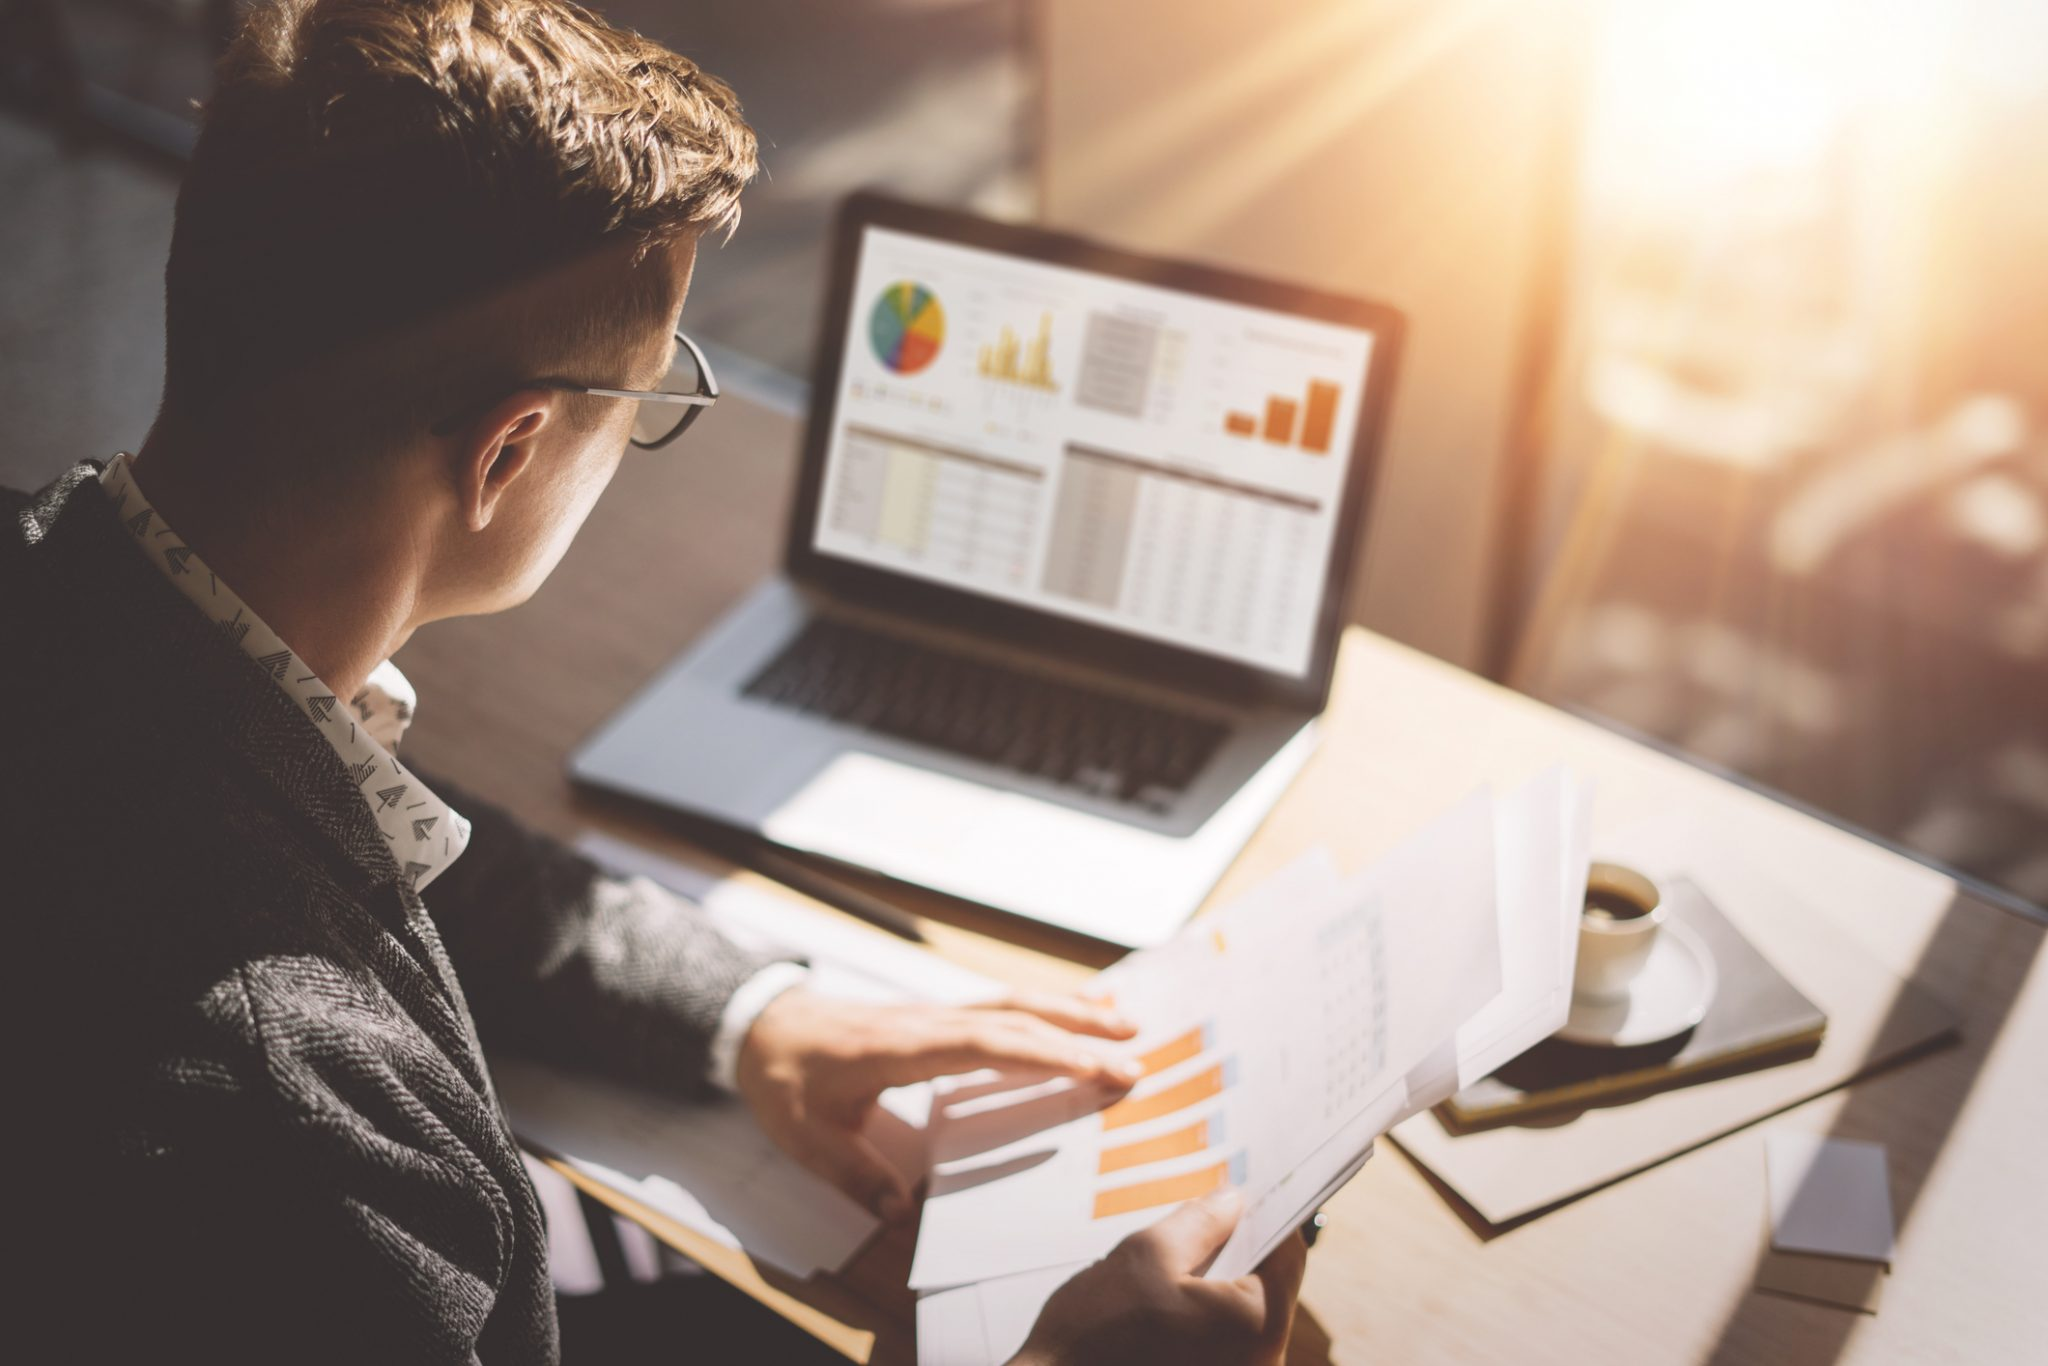 How to Properly Select and Evaluate an Investment Manager